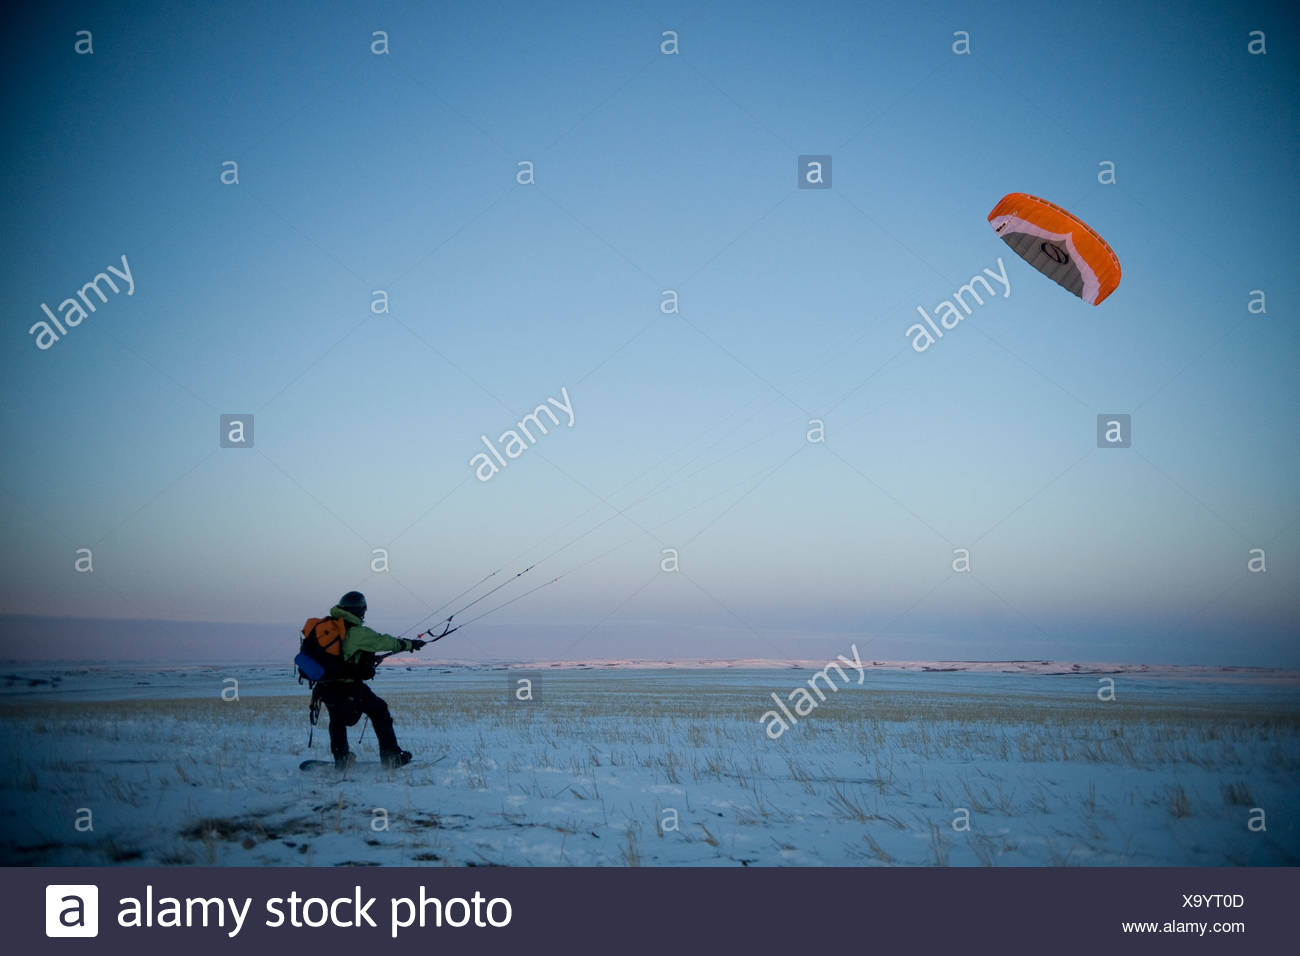 A young man taking off with his snowkite. - Stock Image